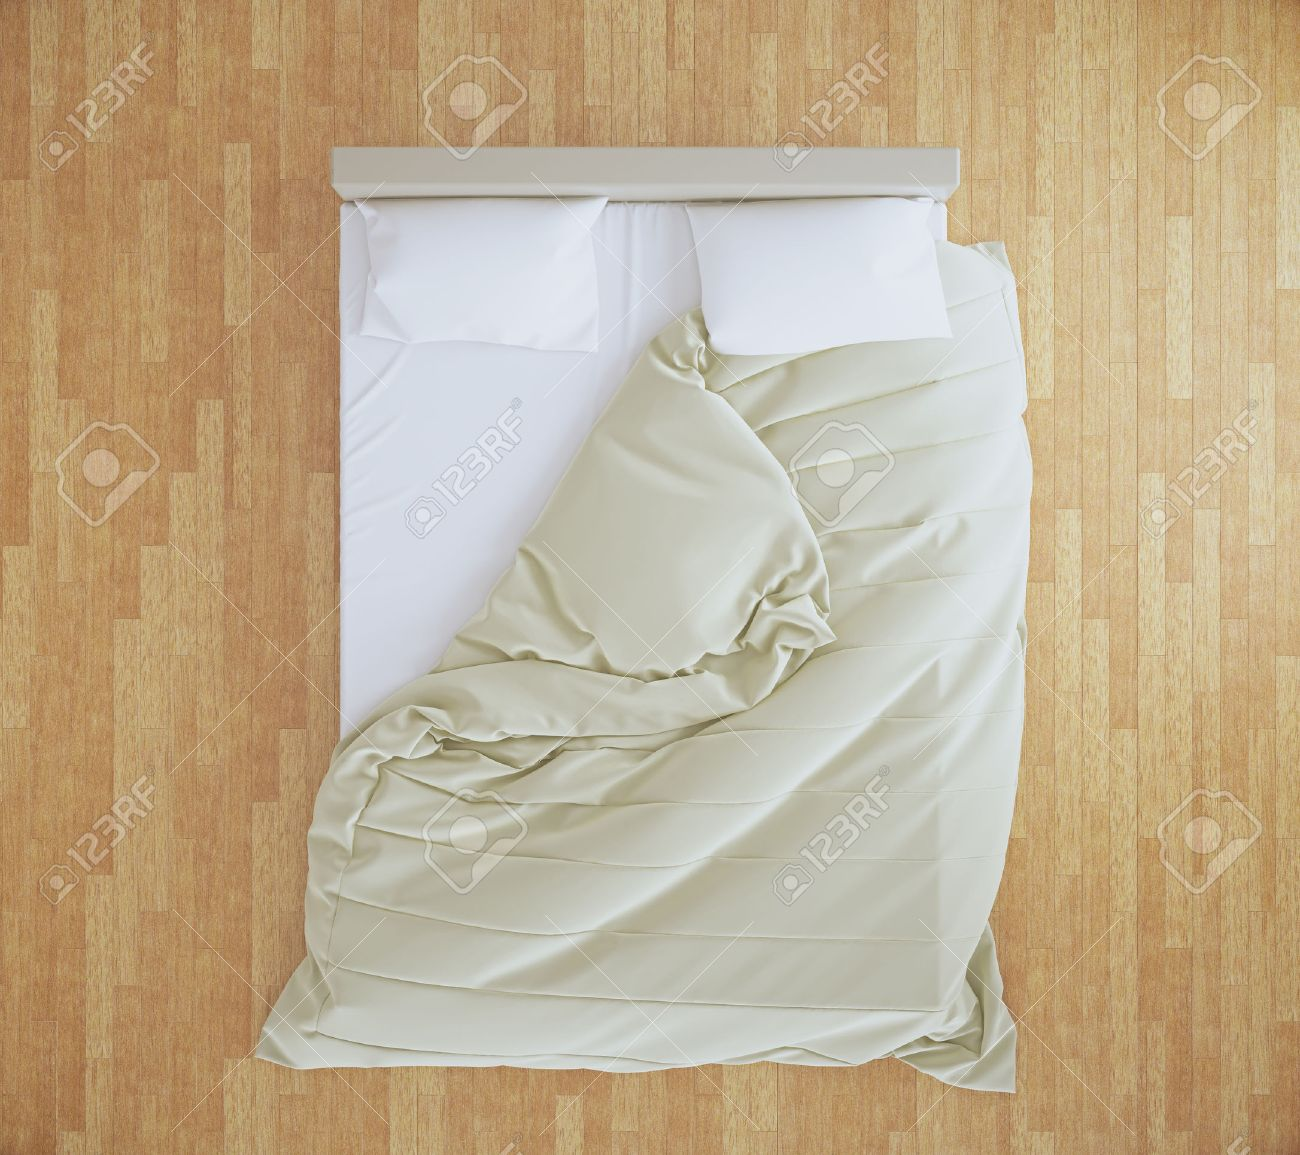 White bed top view - Top View Of An Unmade Bed With Beige Blanket And White Linens On Brown Wooden Floor